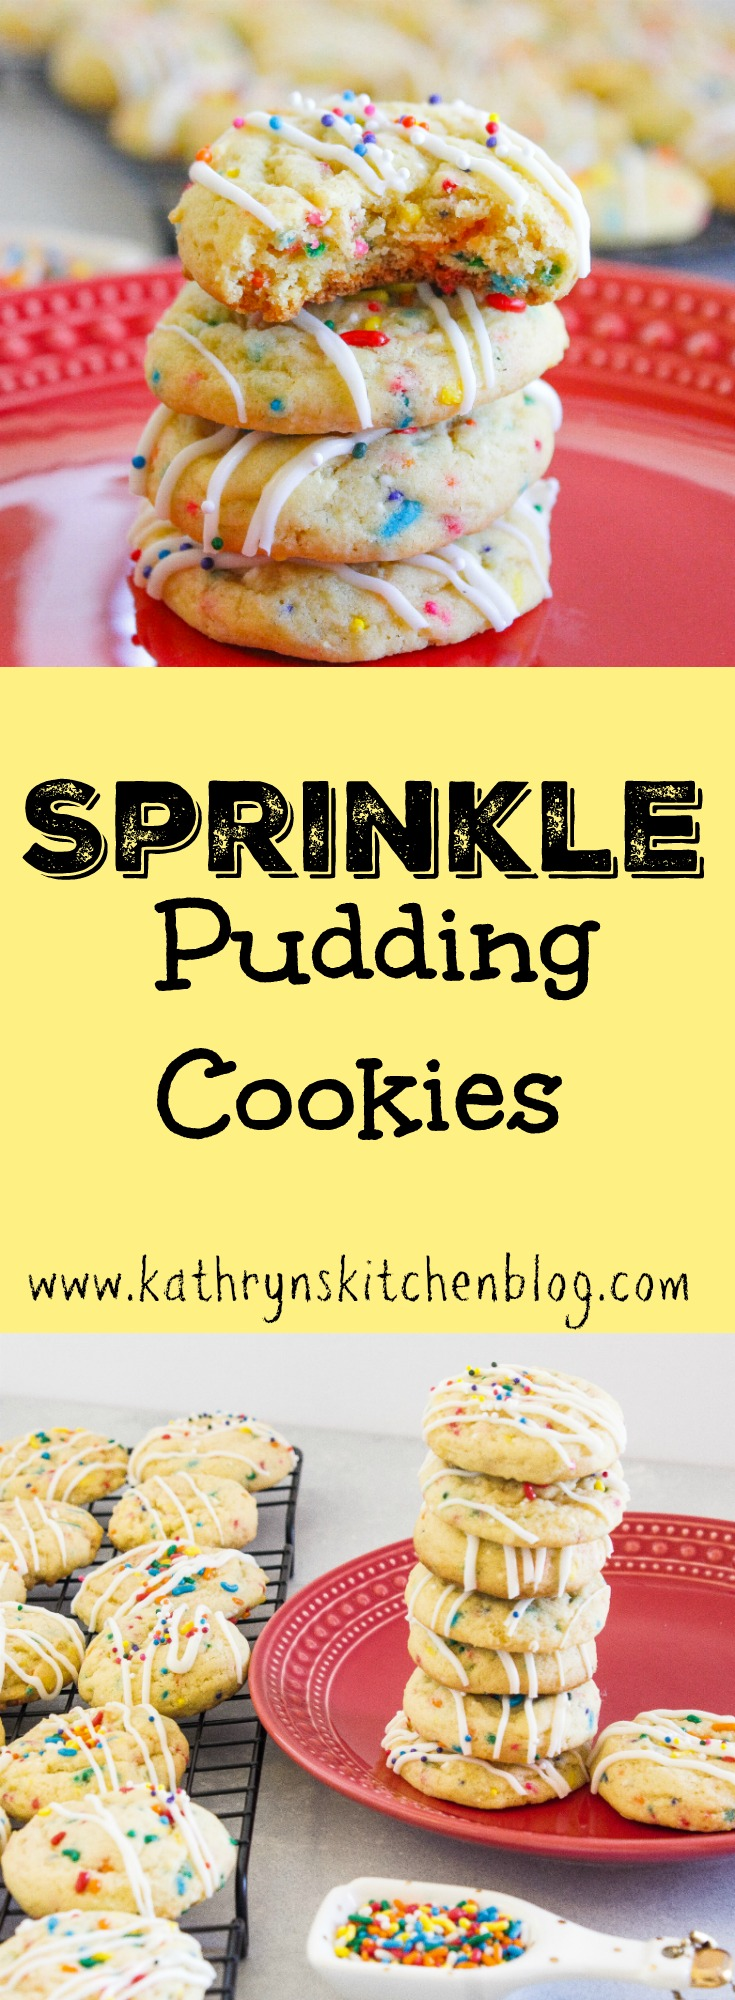 Sprinkle Pudding Cookies